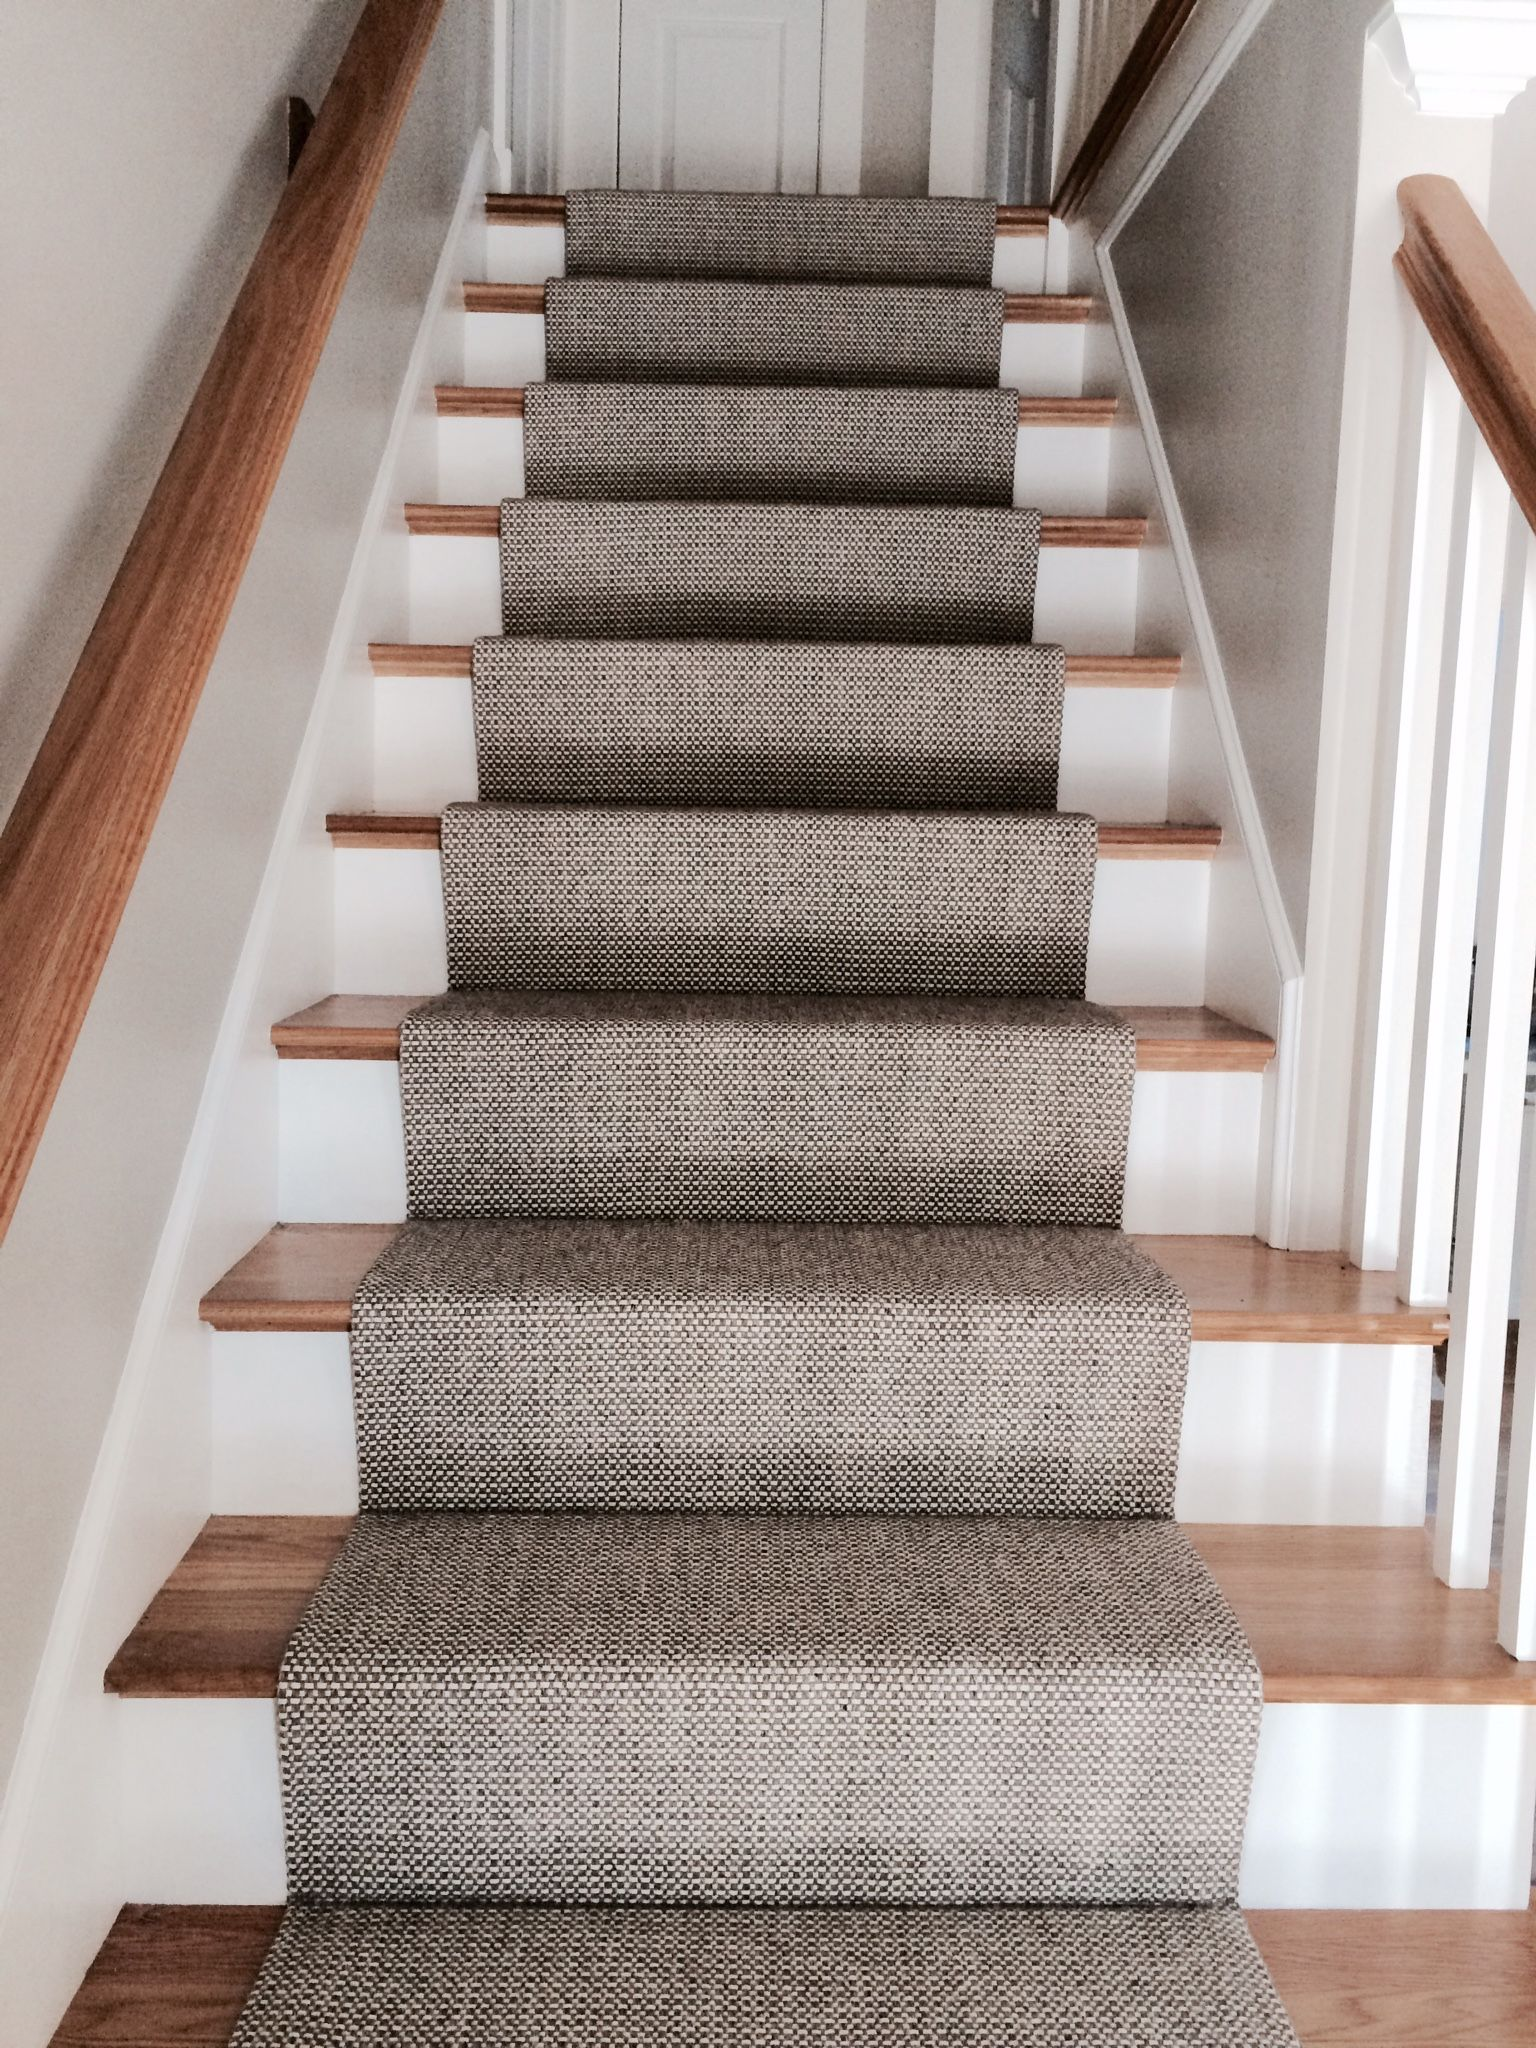 woven wool stair runner that we fabricated using a fold and RPZQBAD